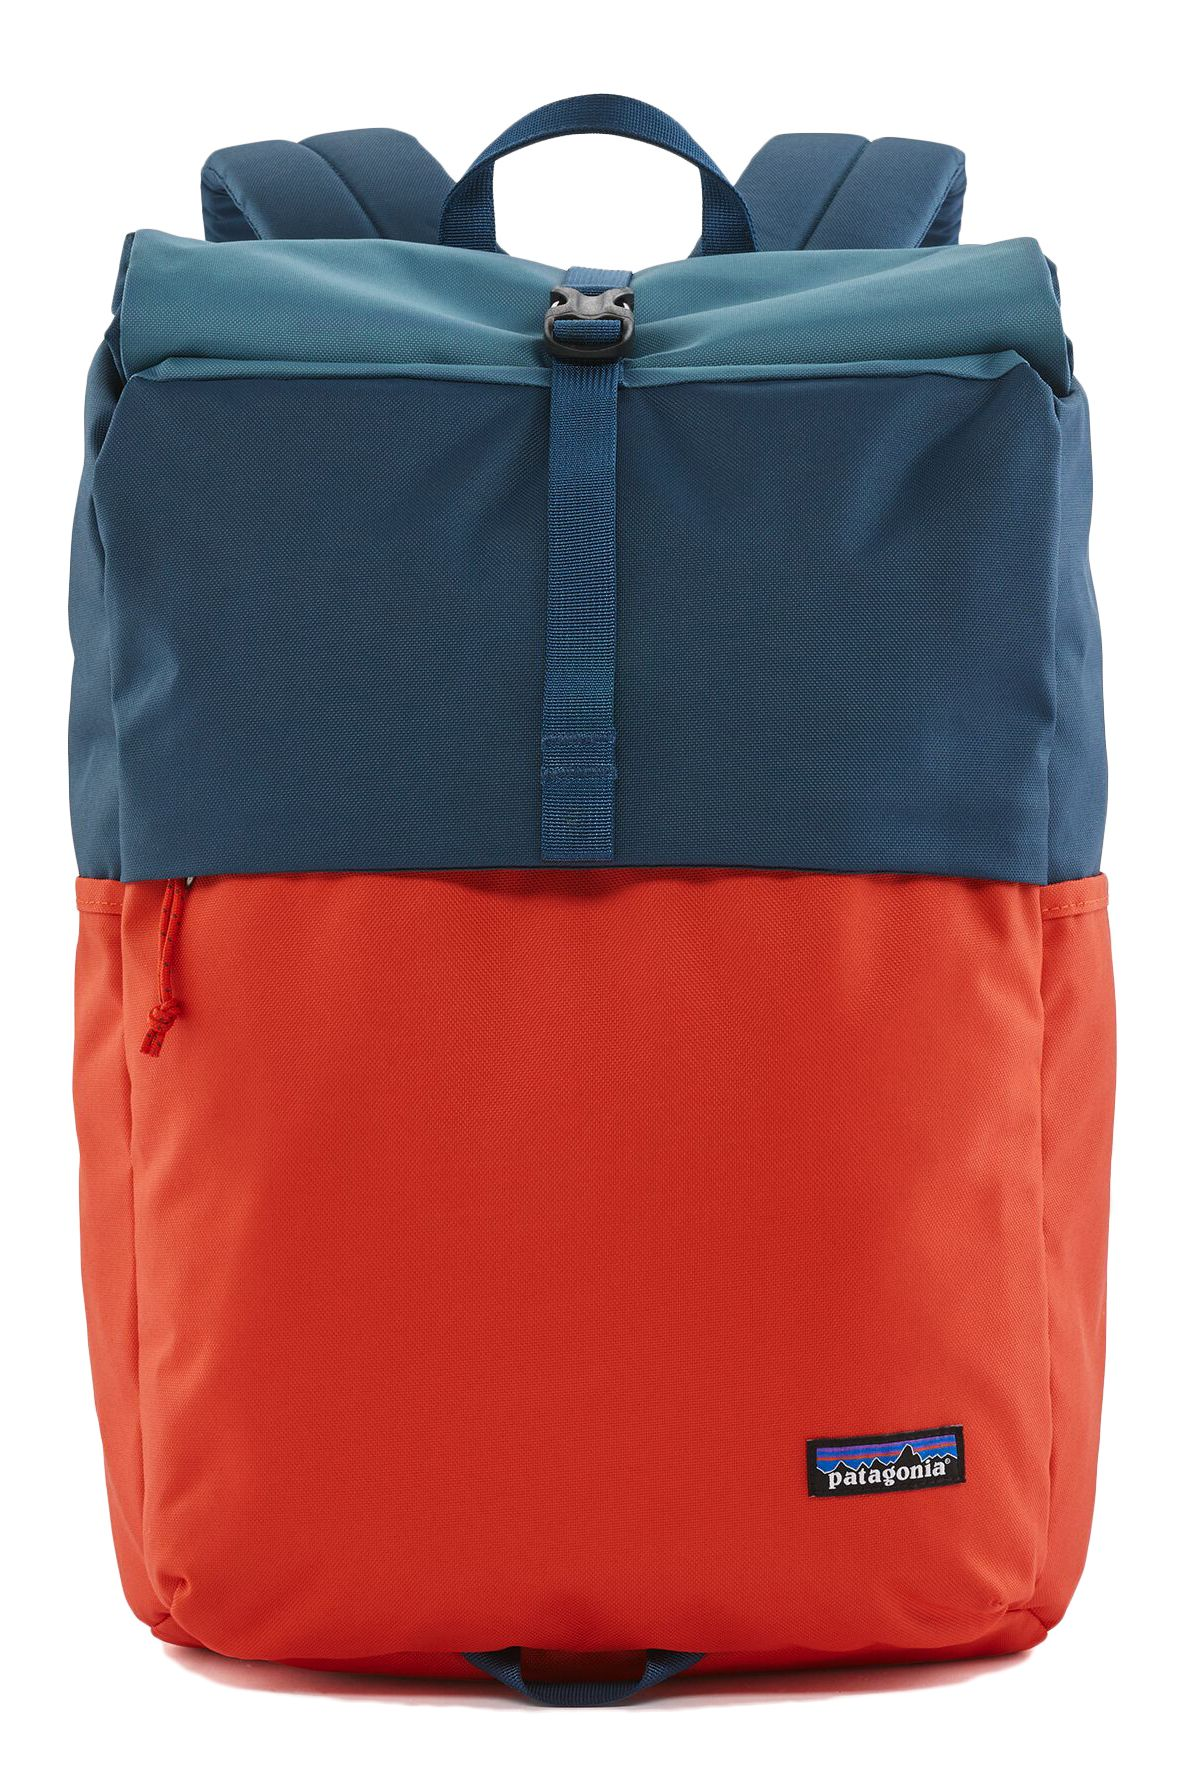 Patagonia Backpack ARBOR ROLL TOP PACK Patchwork: Paintbrush Red